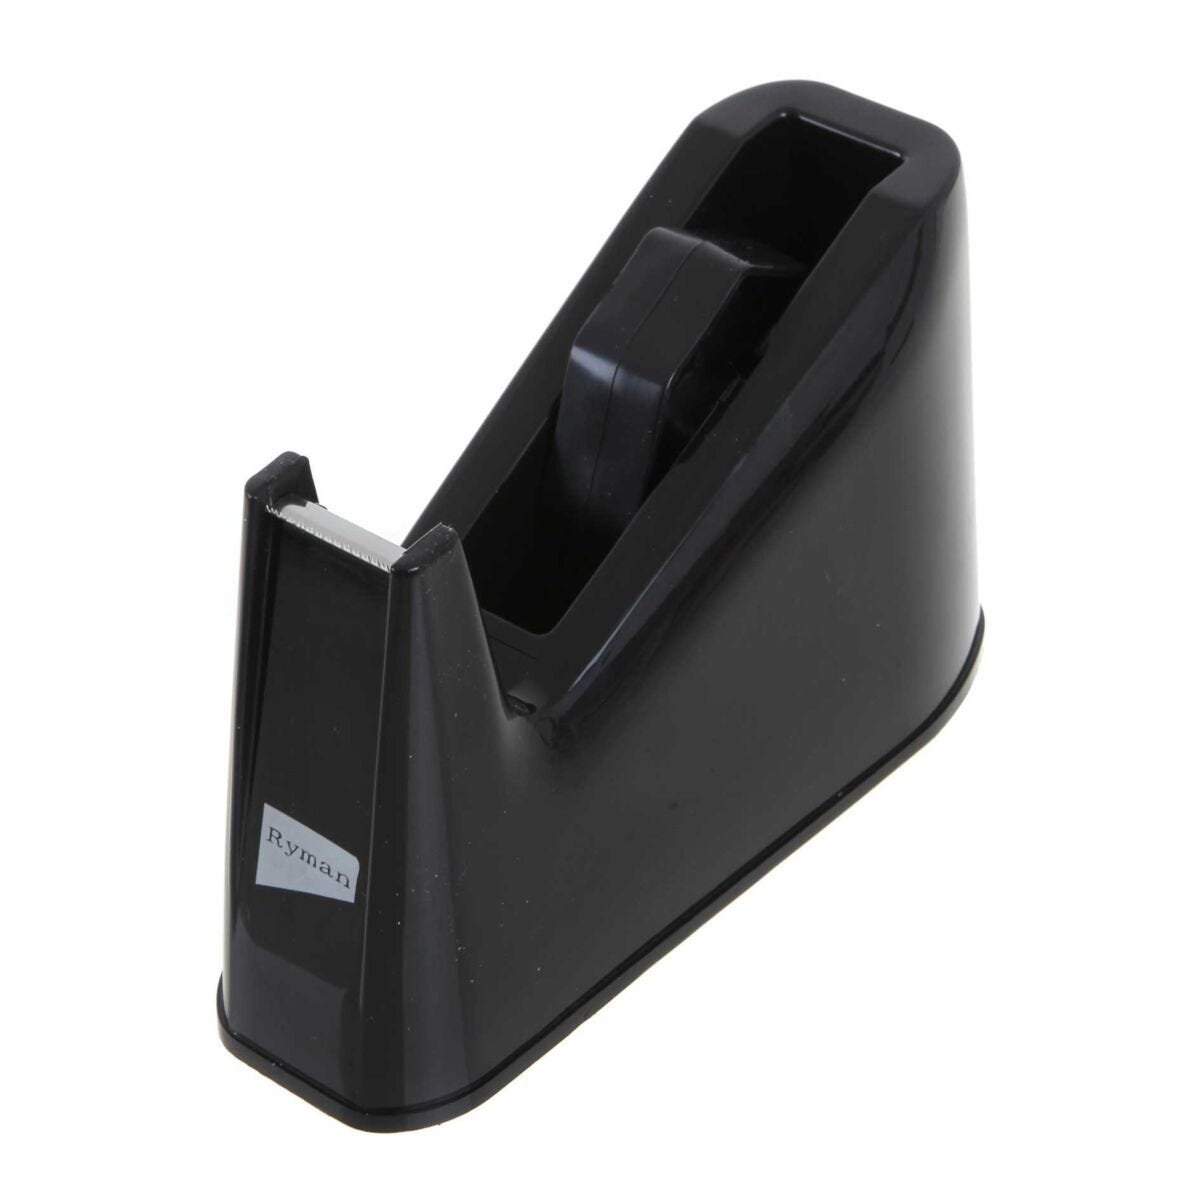 Ryman Tape Dispenser Large Black